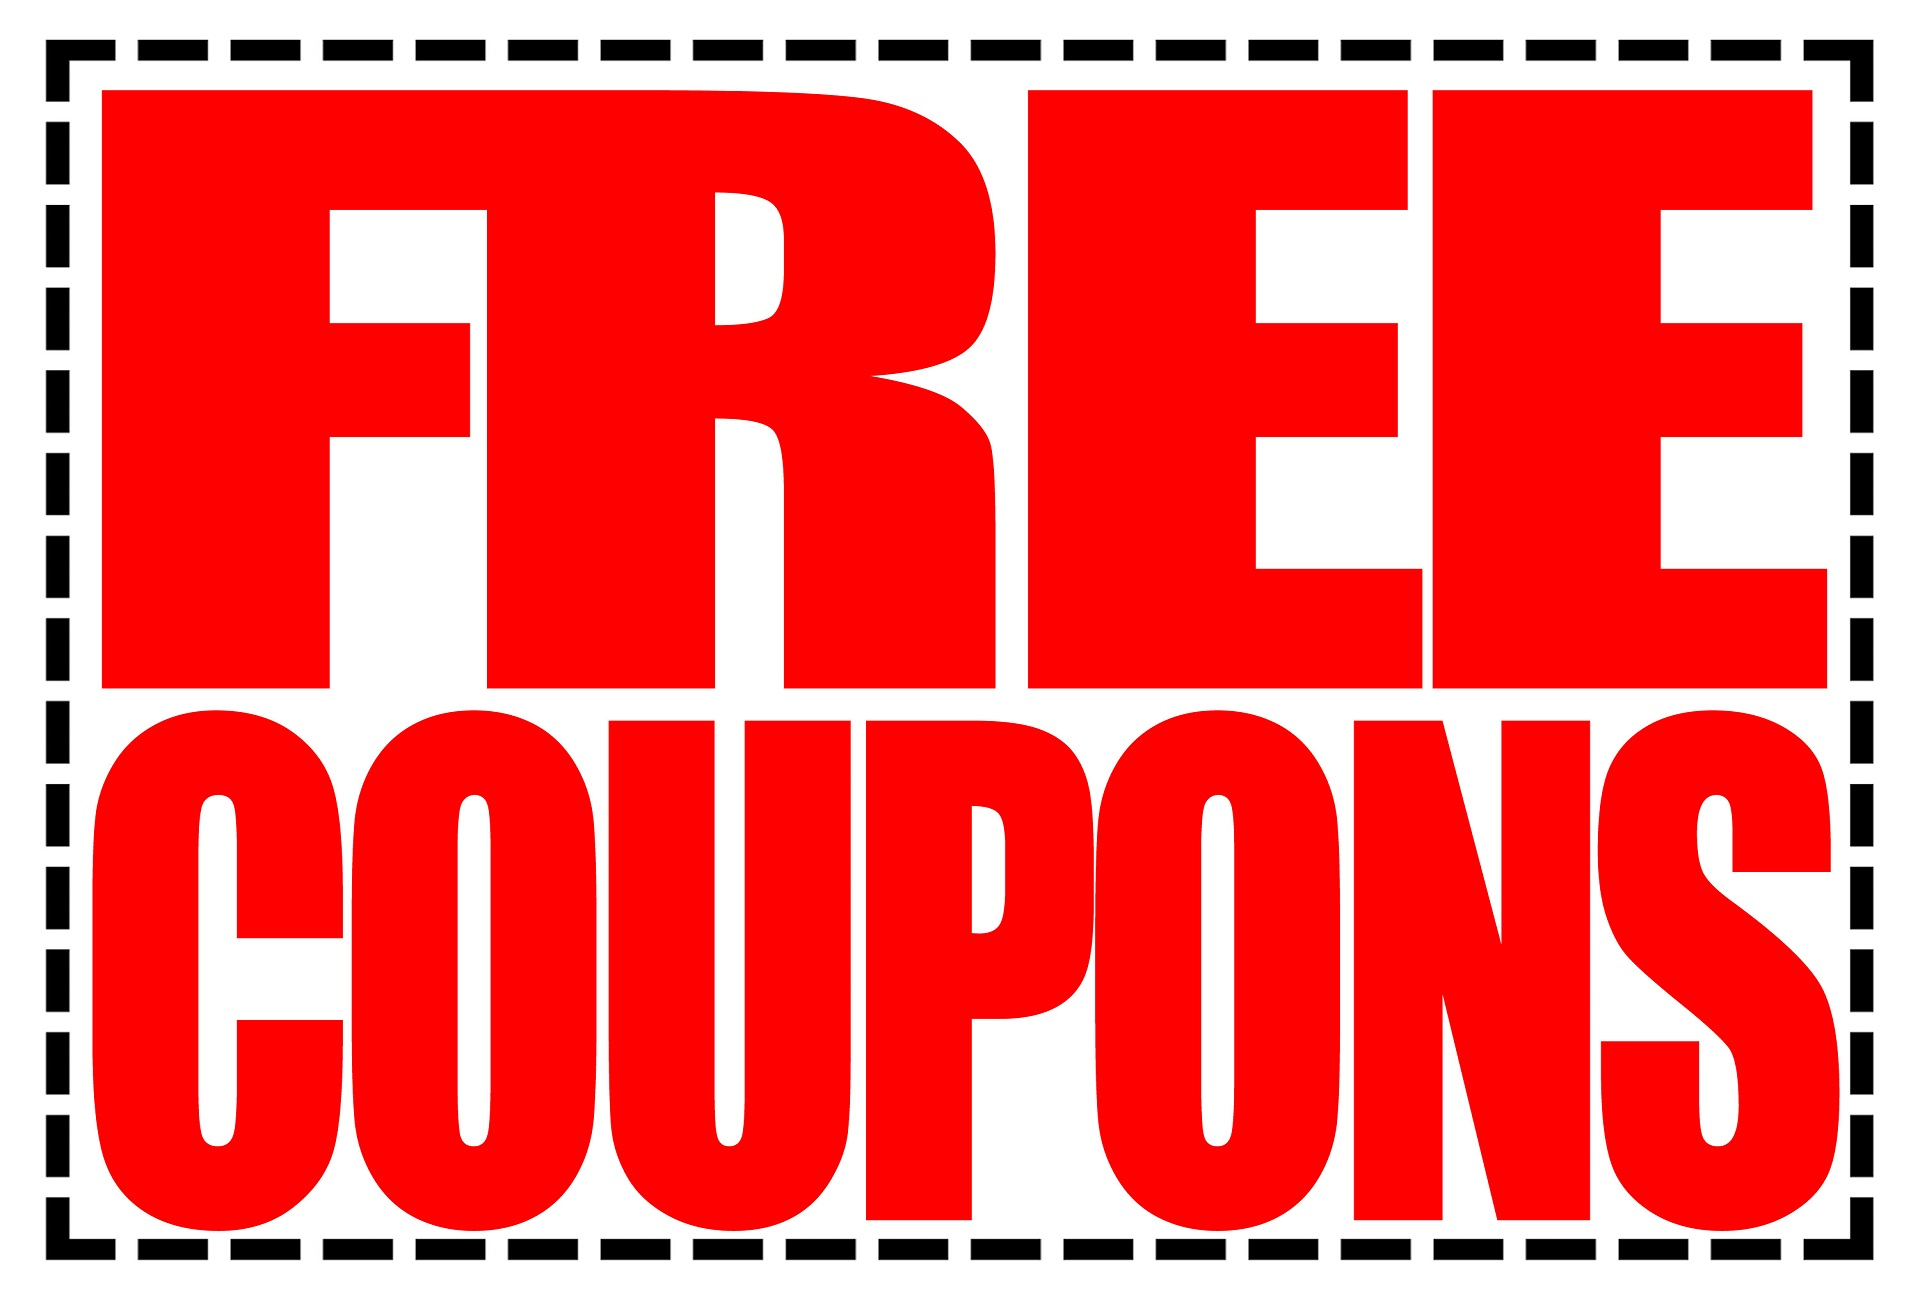 Hotter discount coupon